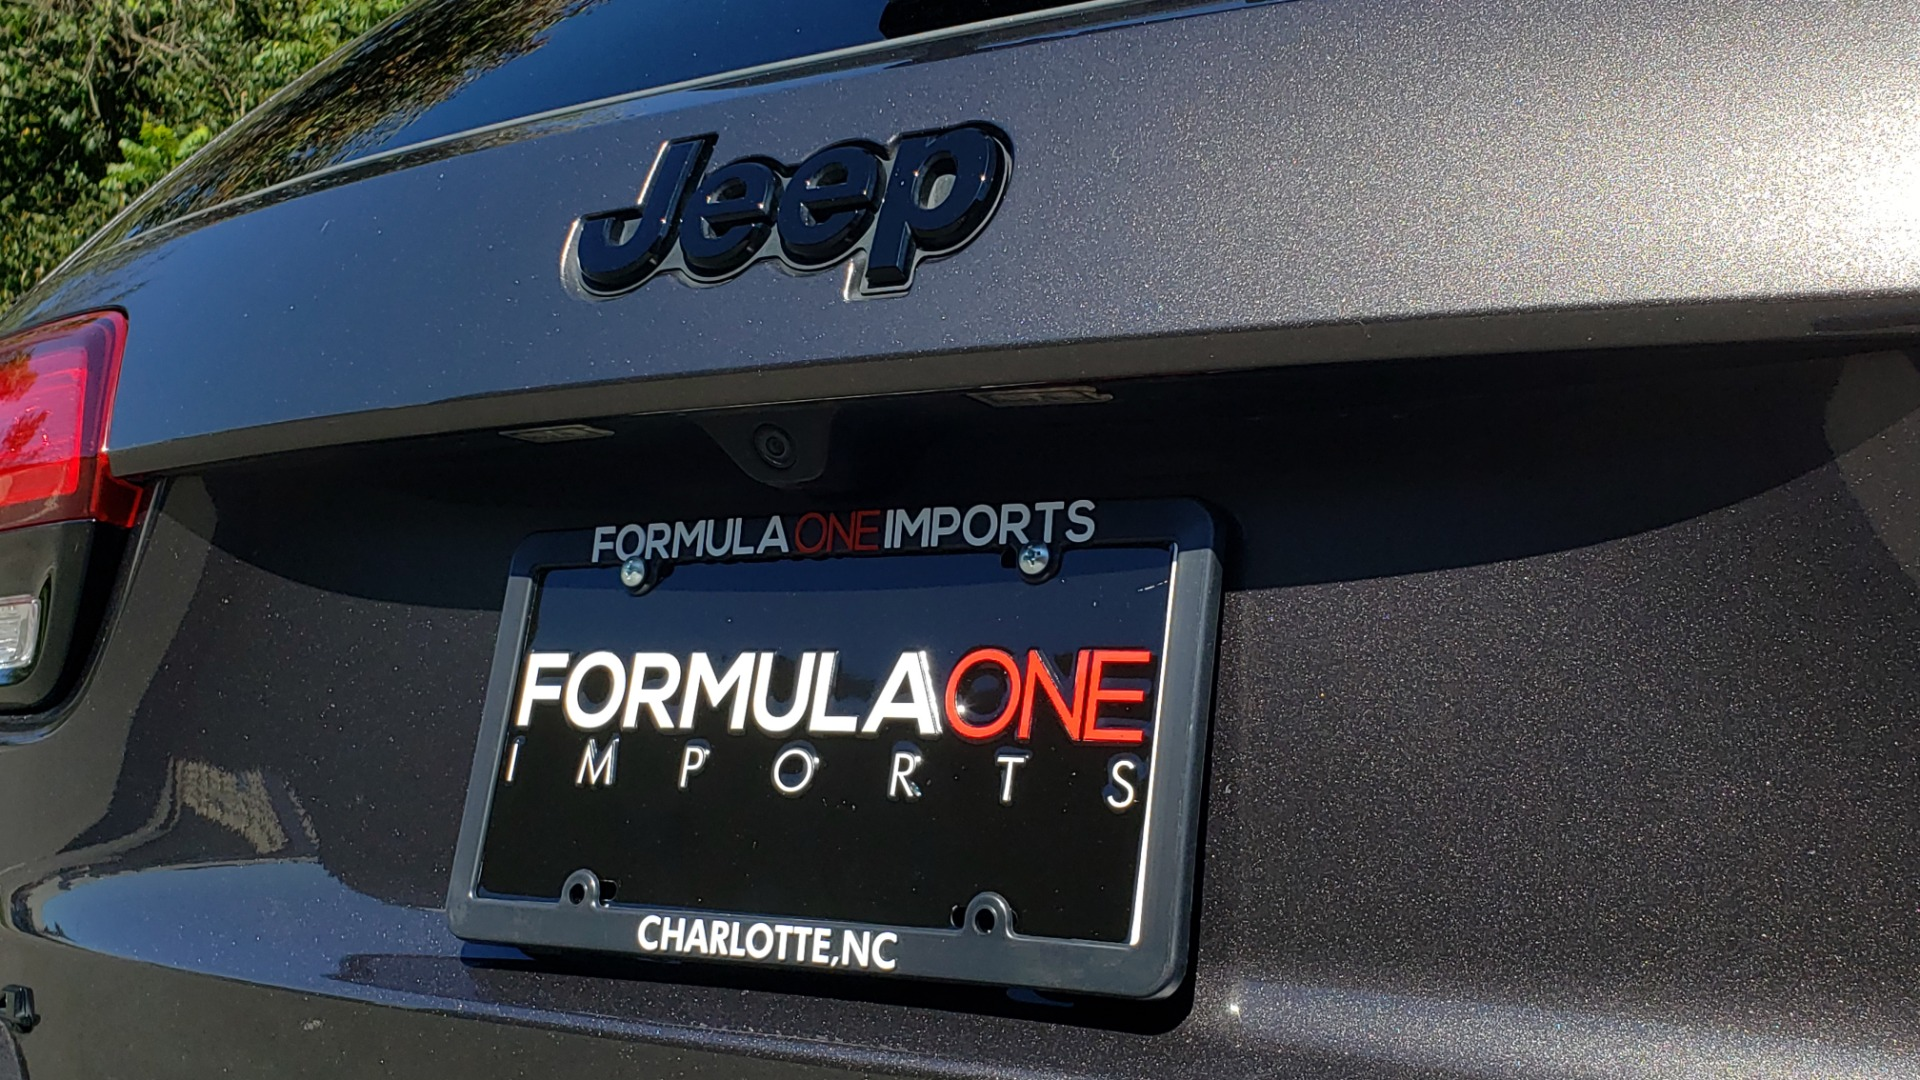 Used 2019 Jeep GRAND CHEROKEE ALTITUDE 4X4 / NAV / WIFI / SUNROOF / REARVIEW for sale $34,995 at Formula Imports in Charlotte NC 28227 35